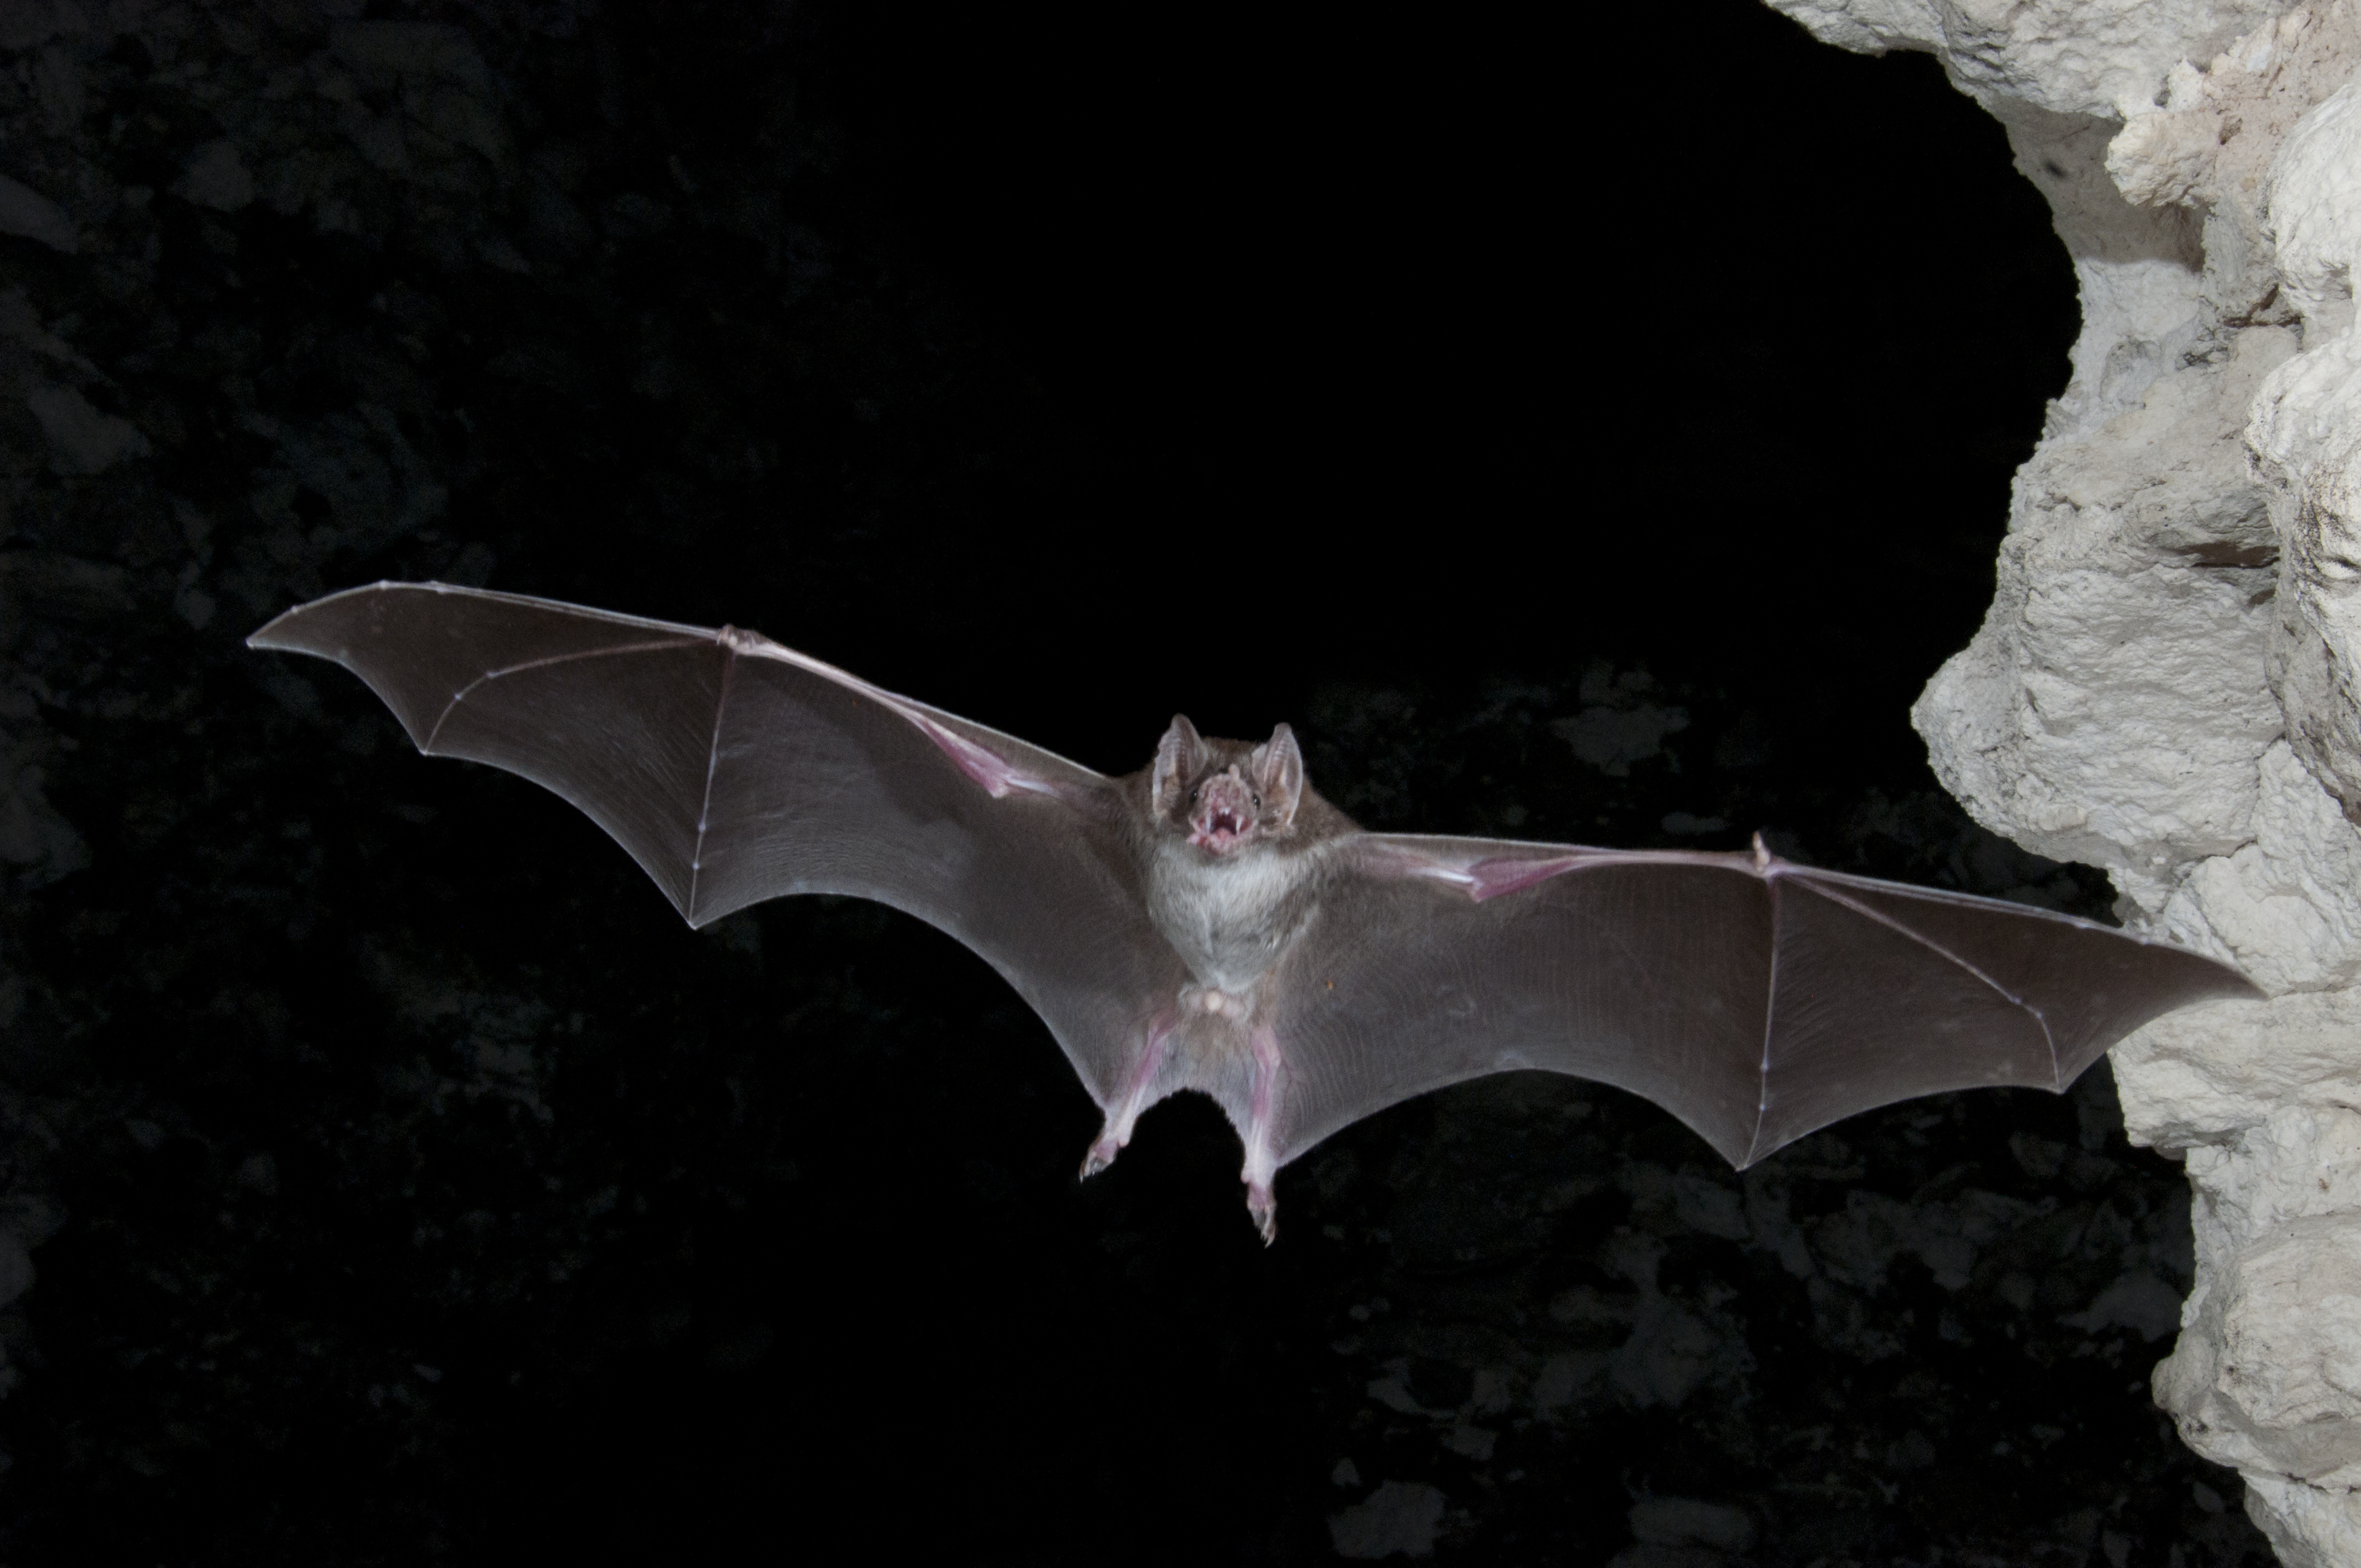 The night life: Why we need bats all the time